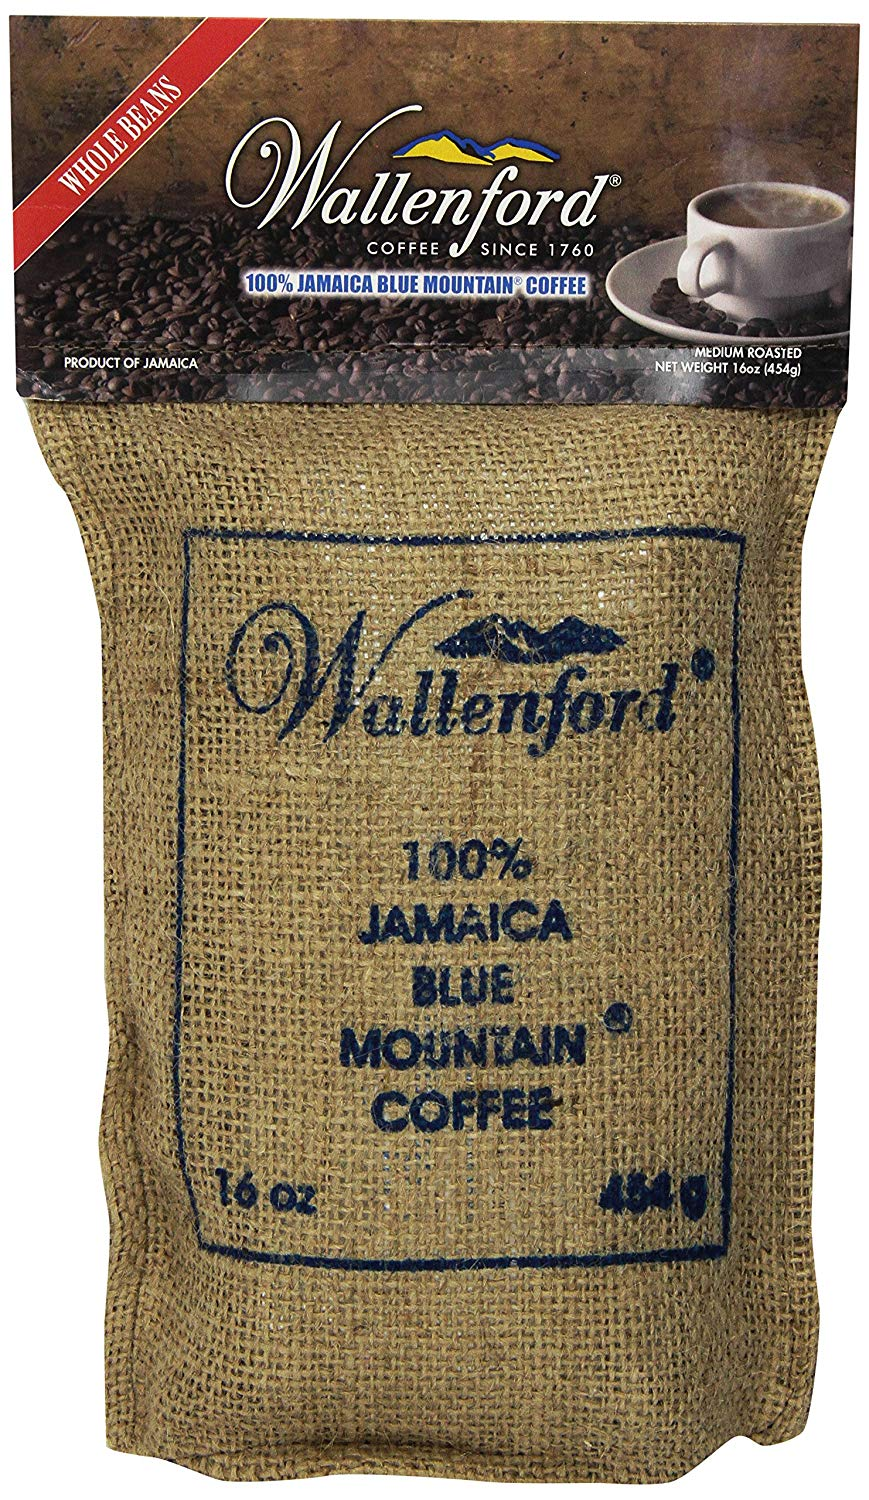 16oz (1lb) Roasted Whole Bean 100% Jamaica Blue Mountain Coffee